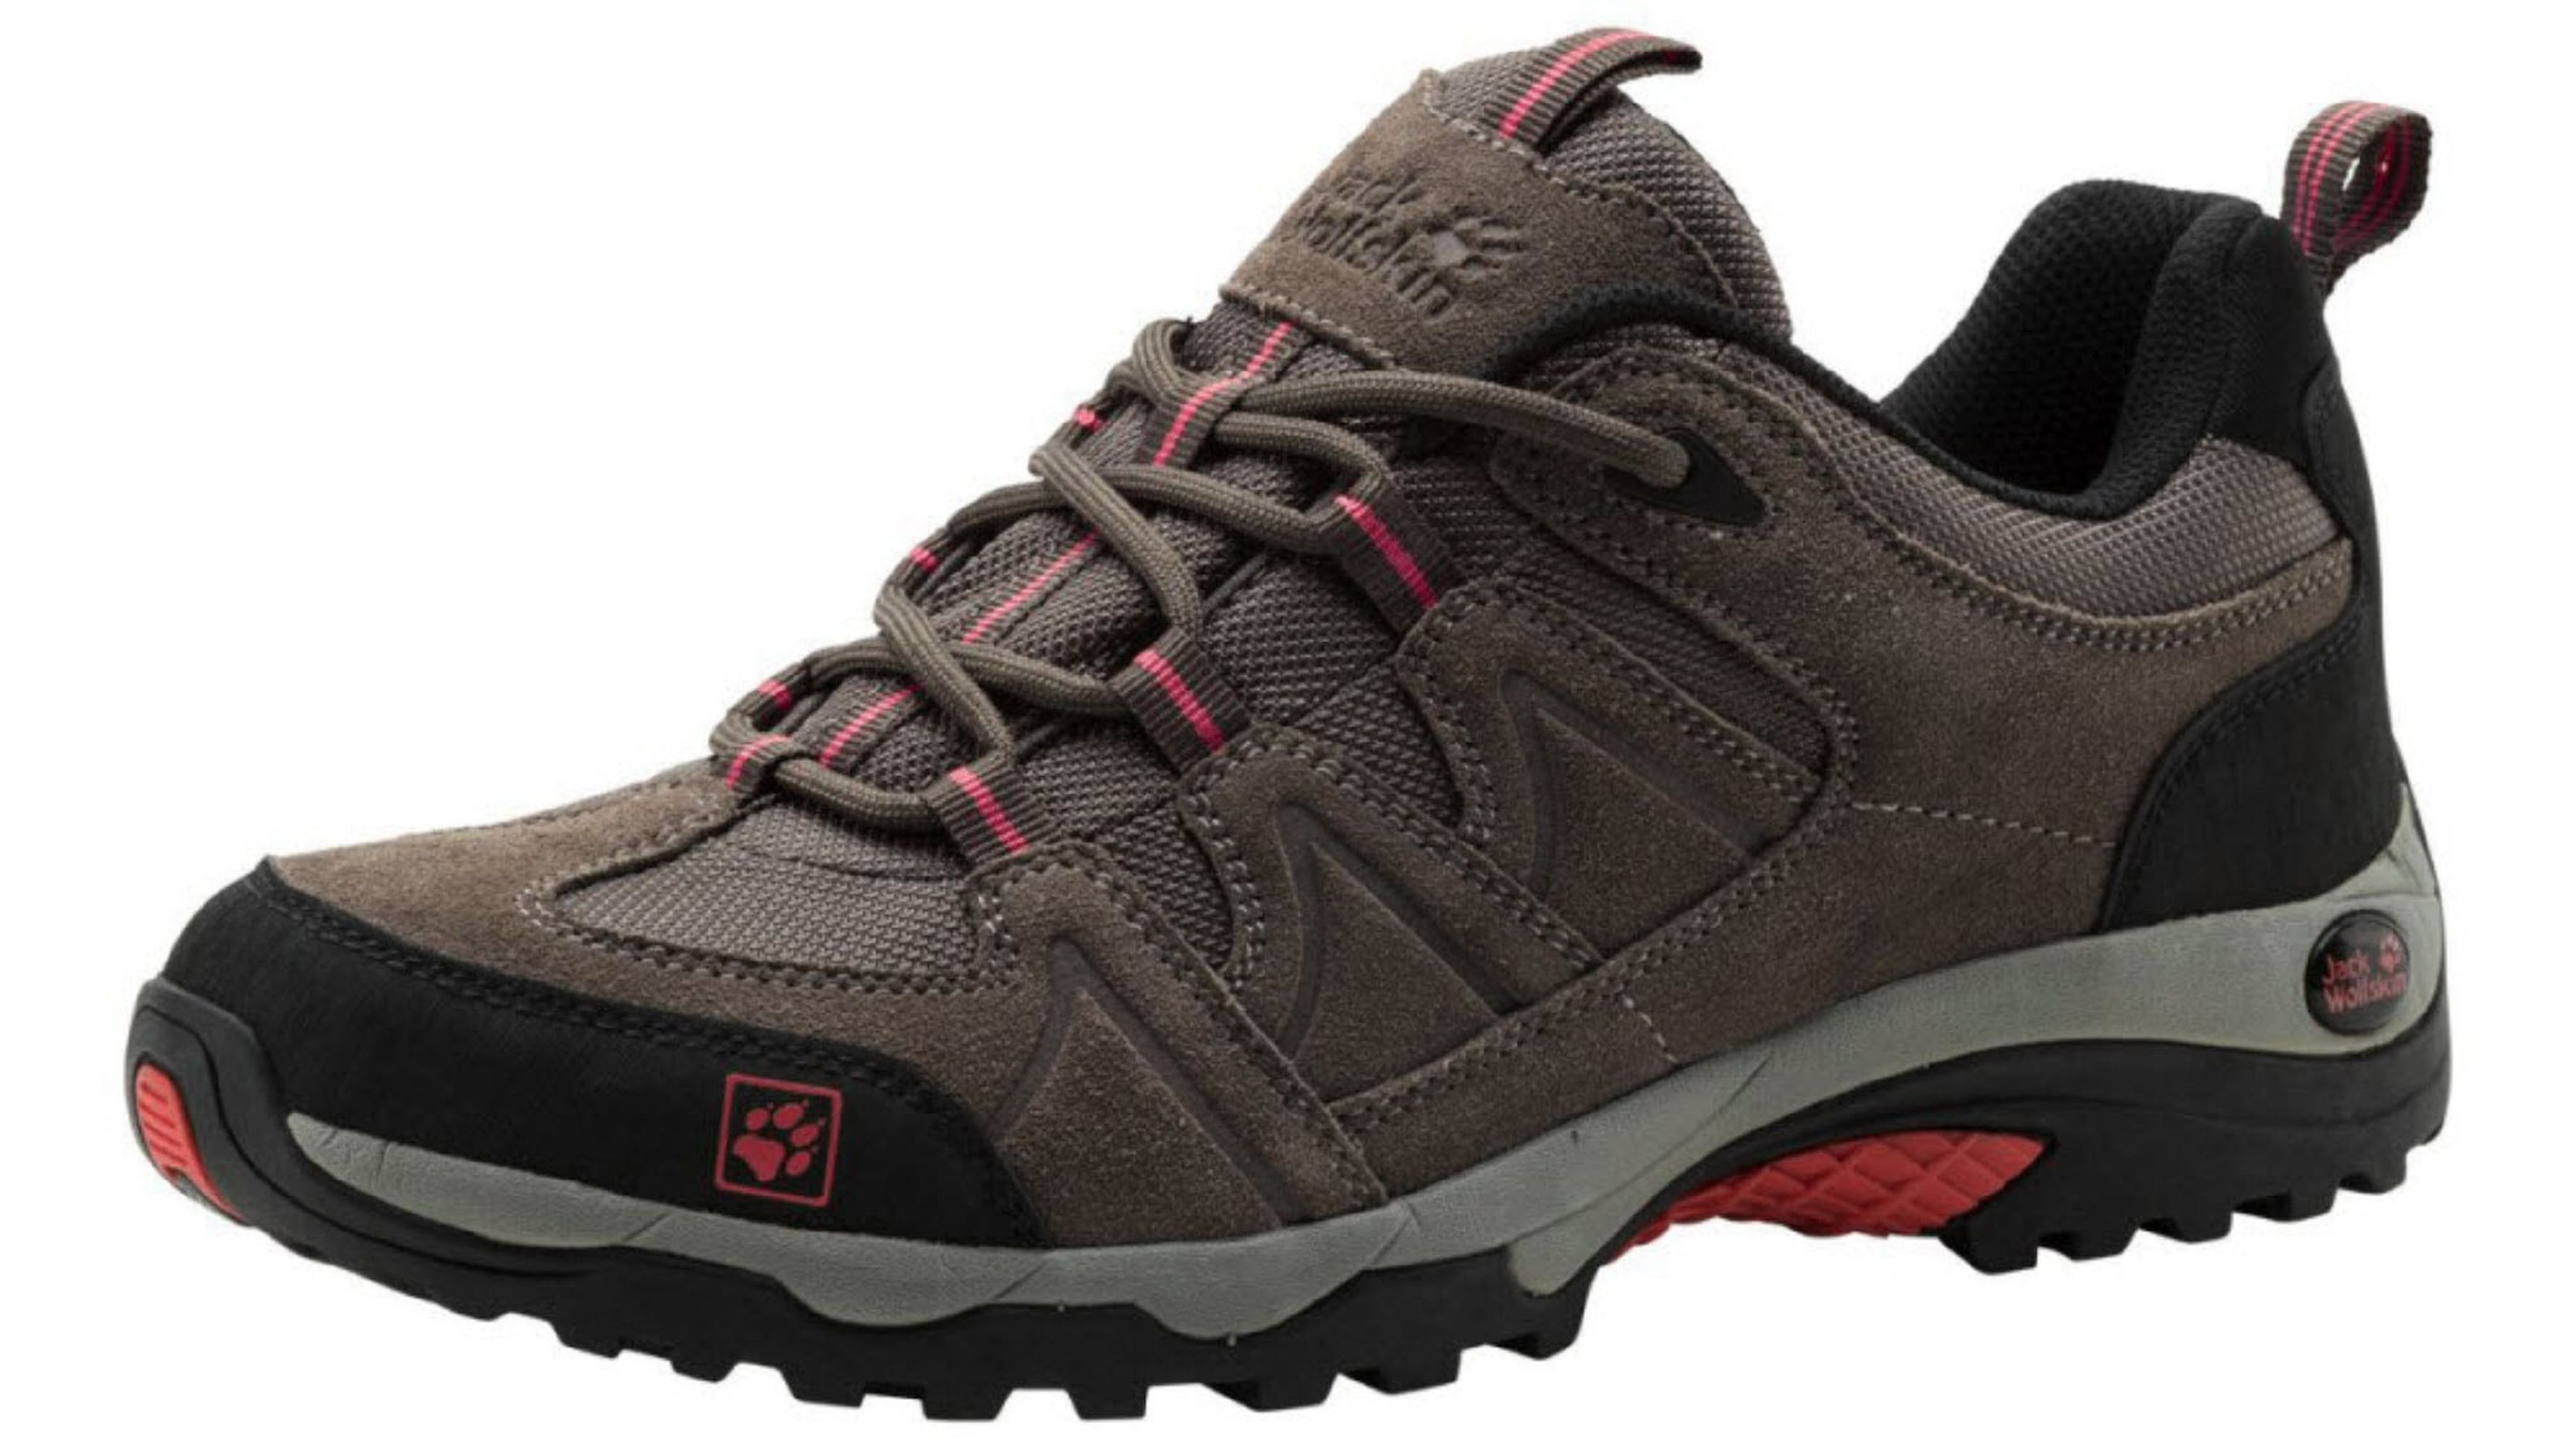 Outdoorschuh ´Traction Low´